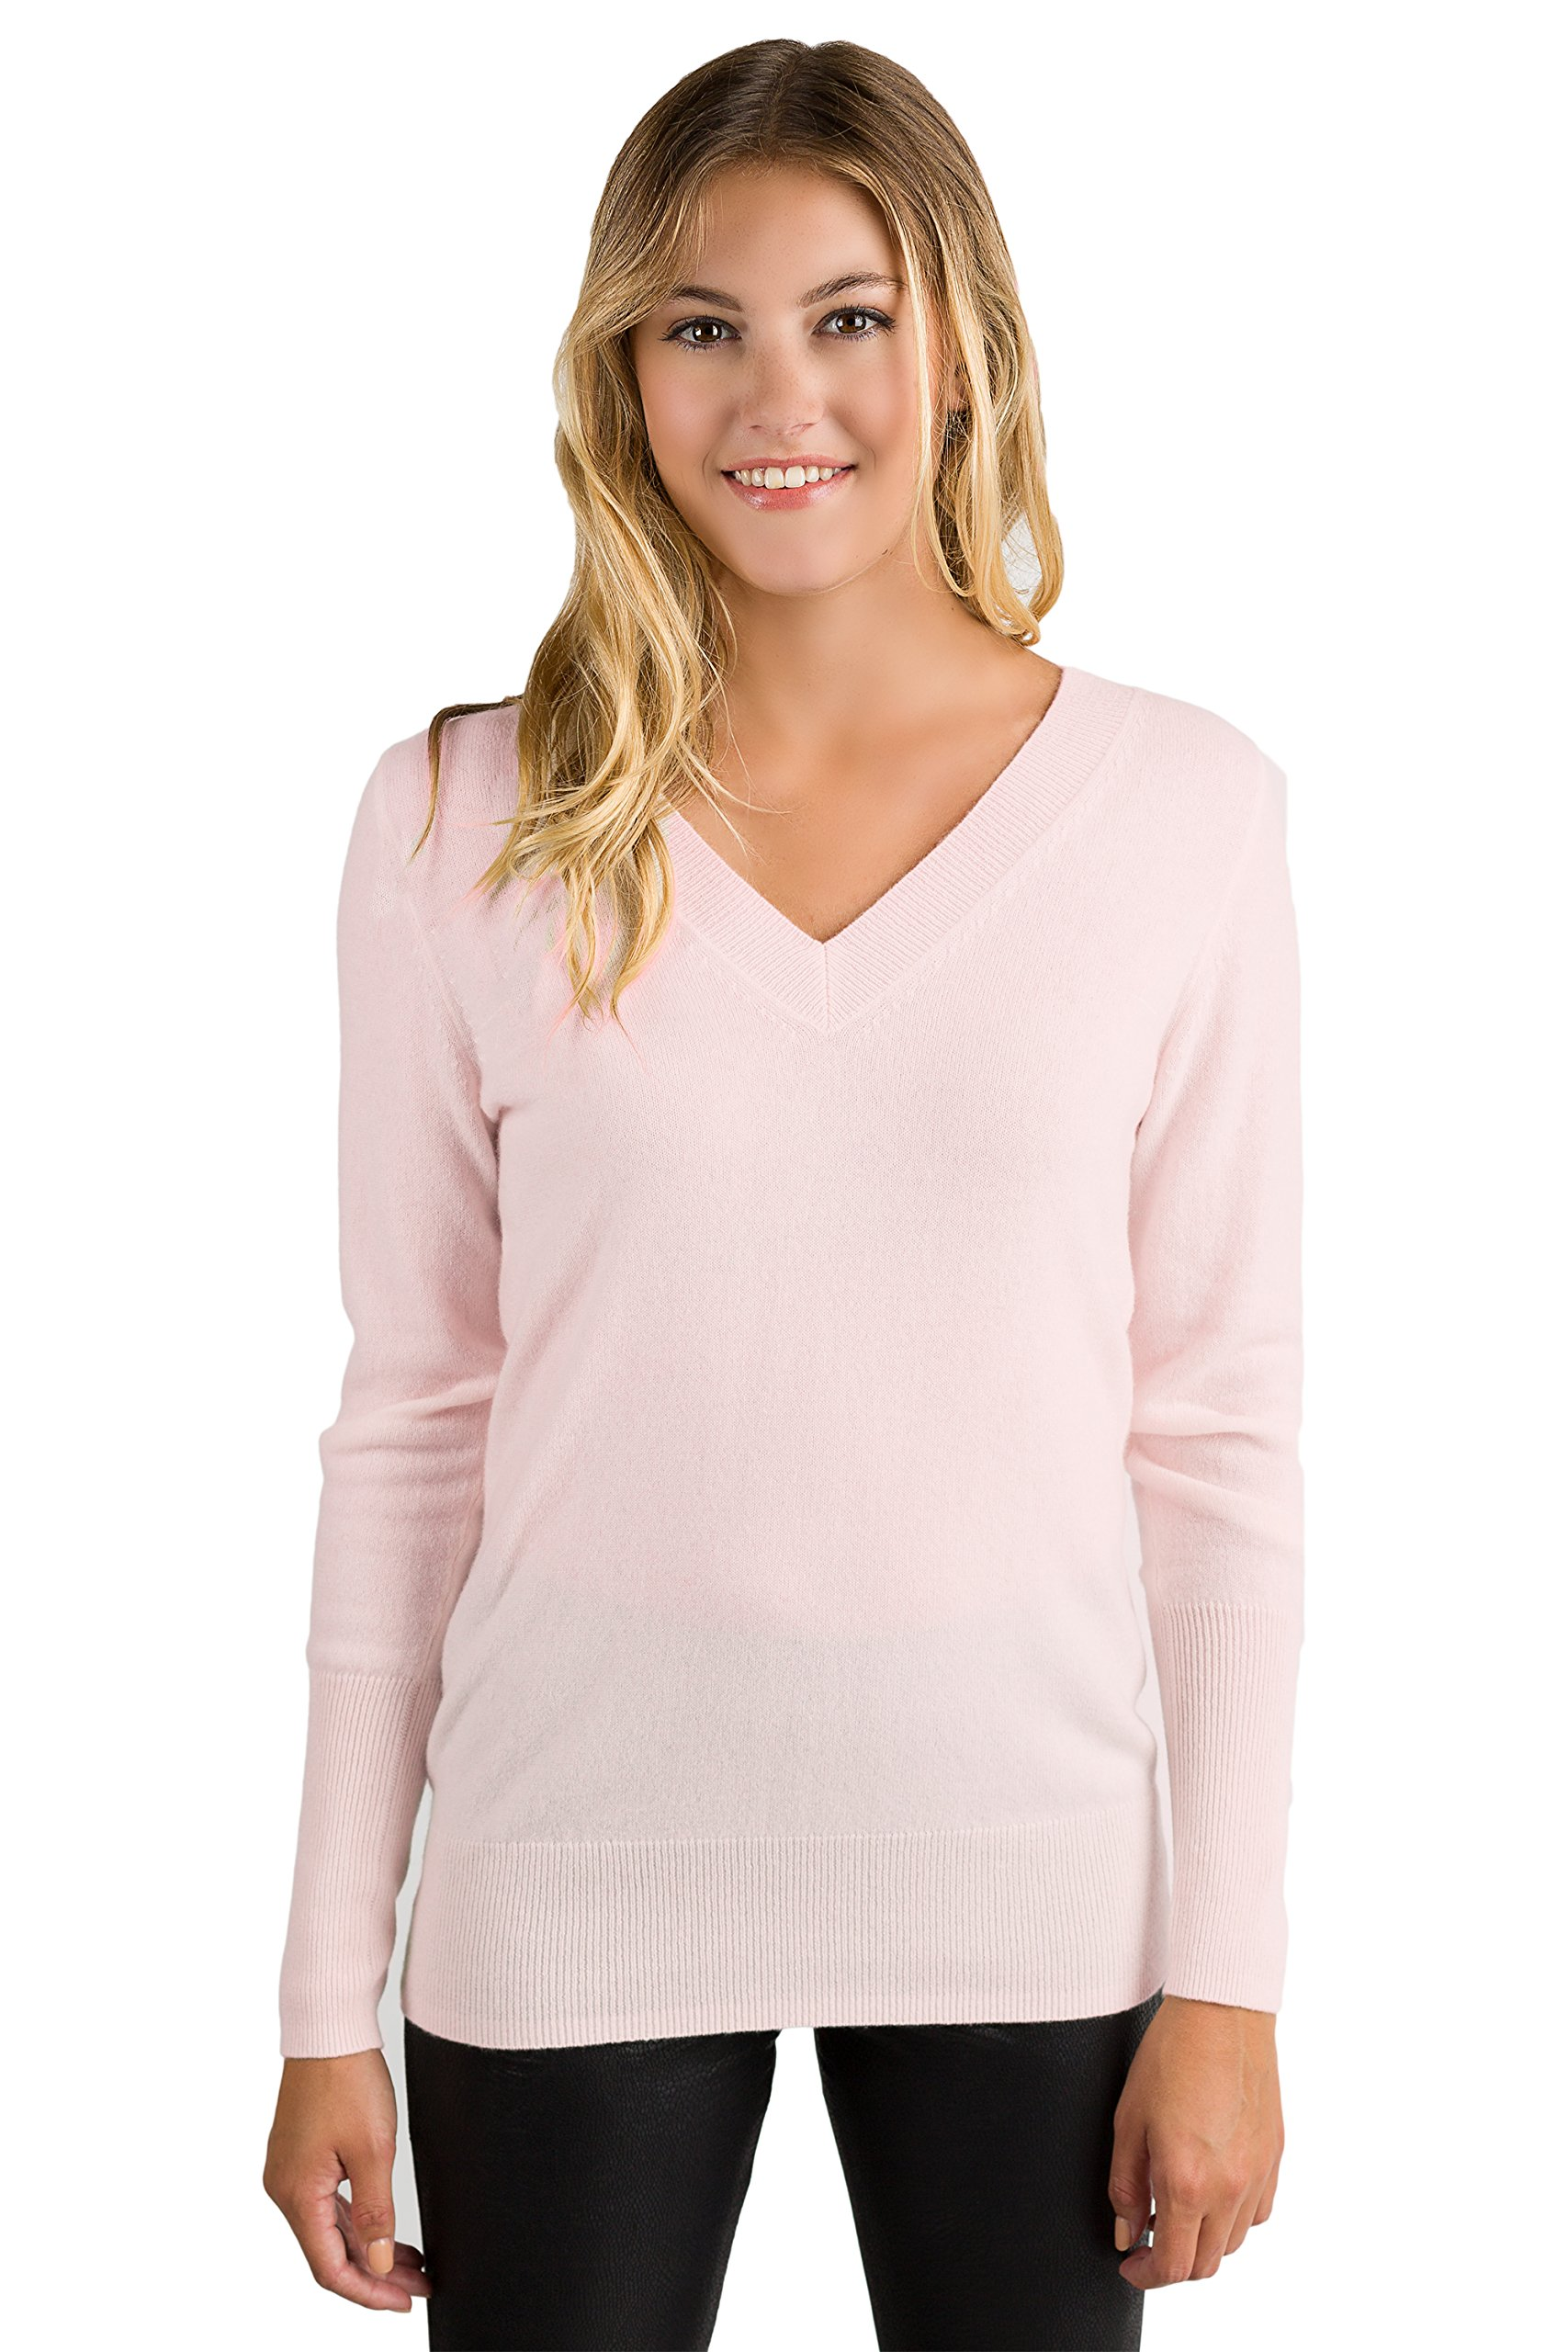 JENNIE LIU Women's 100% Pure Cashmere Long Sleeve Ava V Neck Pullover Sweater (PM, PetalPink)